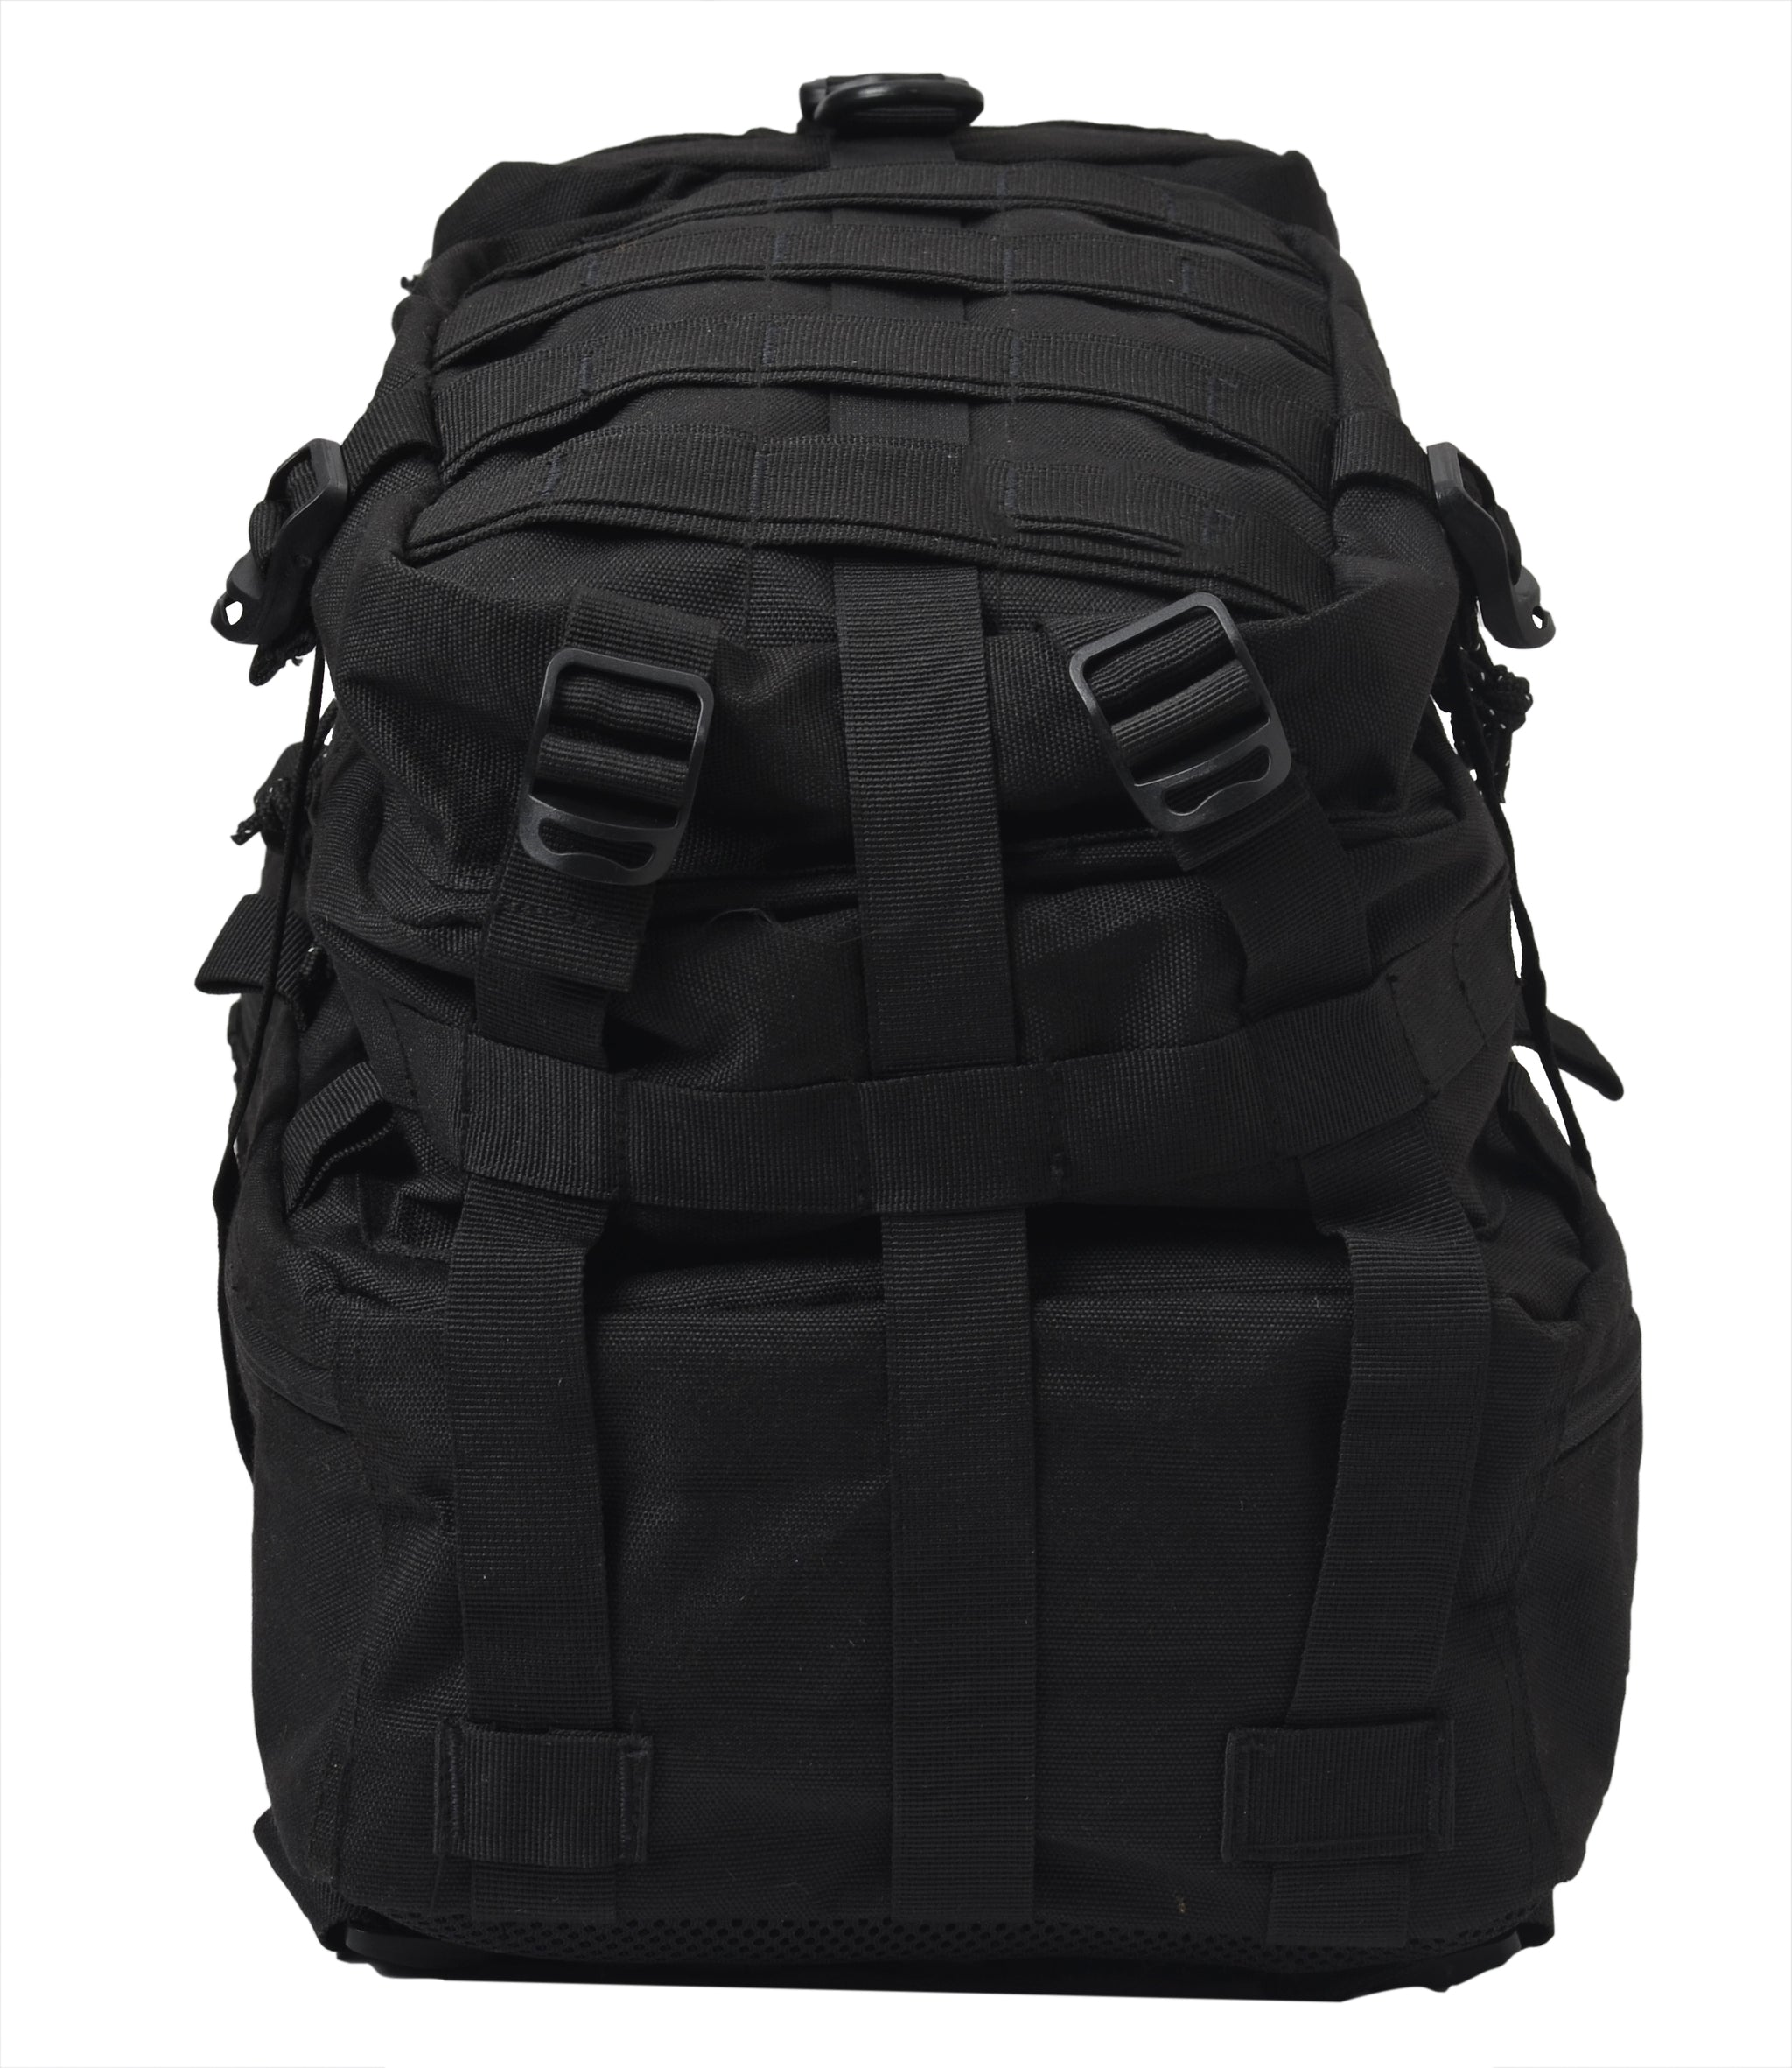 F Gear Military Tactical 29 Liter Backpack (Black)